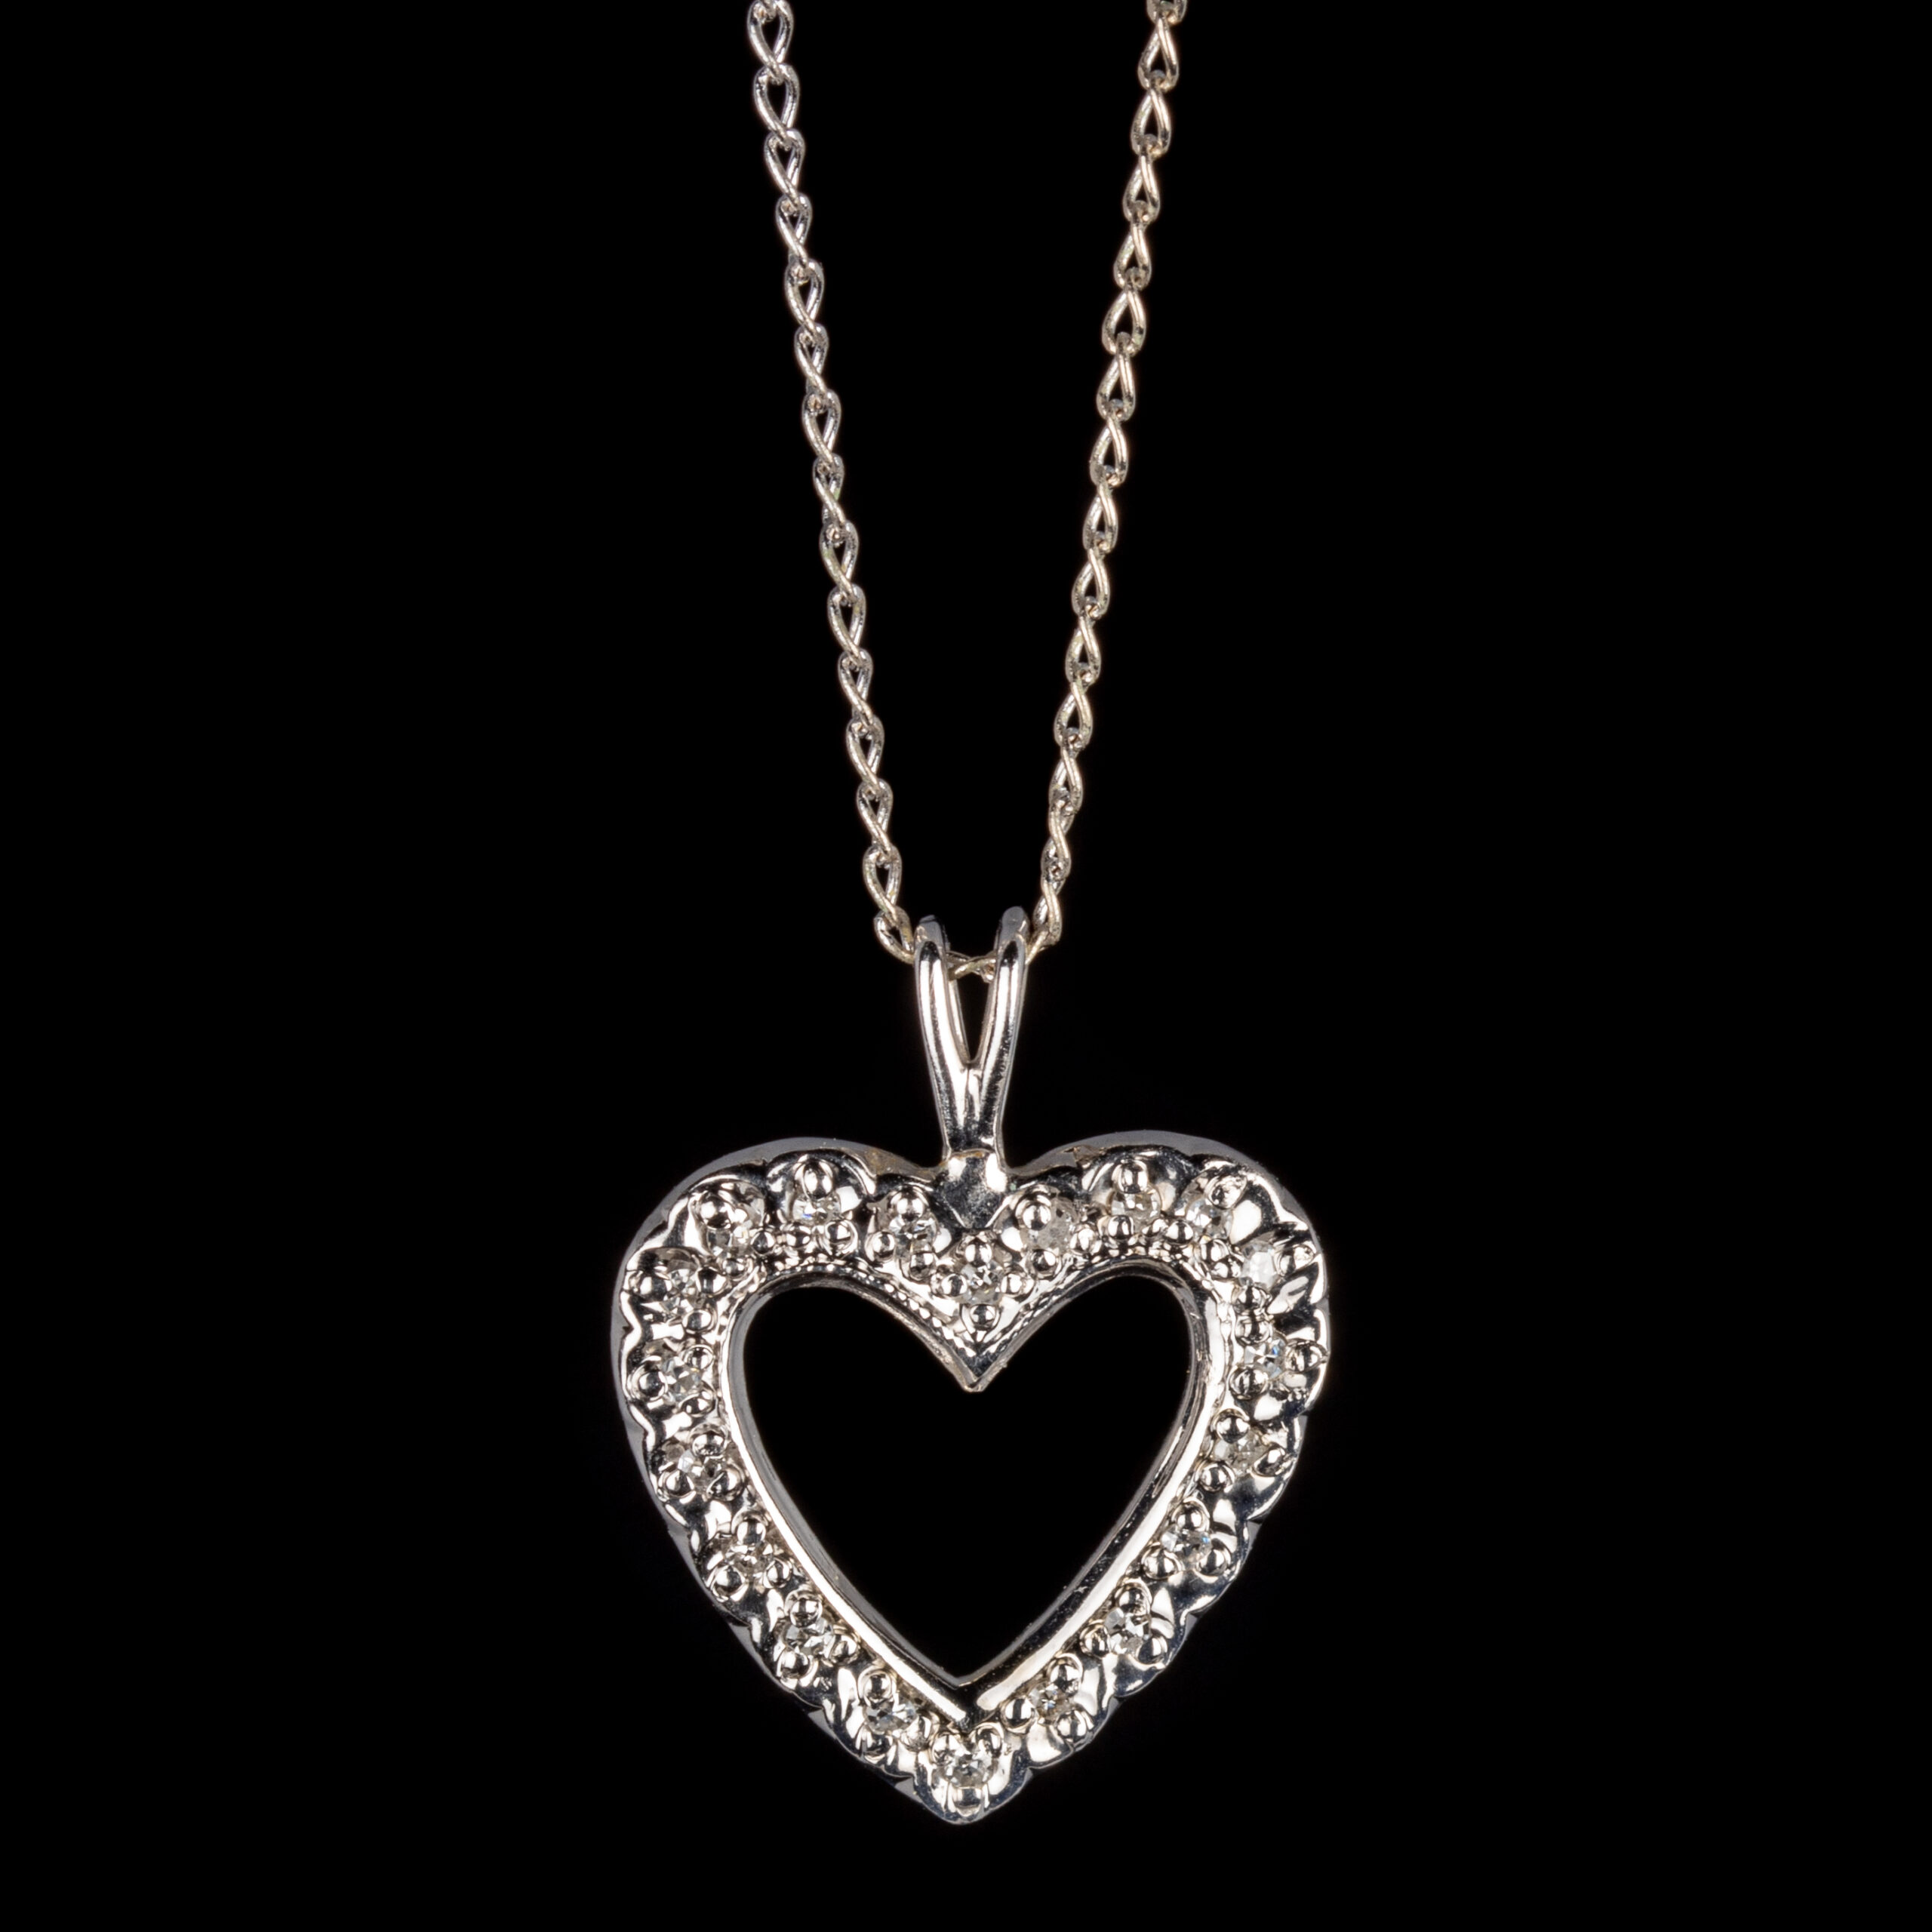 Pre-Owned 14k Diamond Heart Necklace